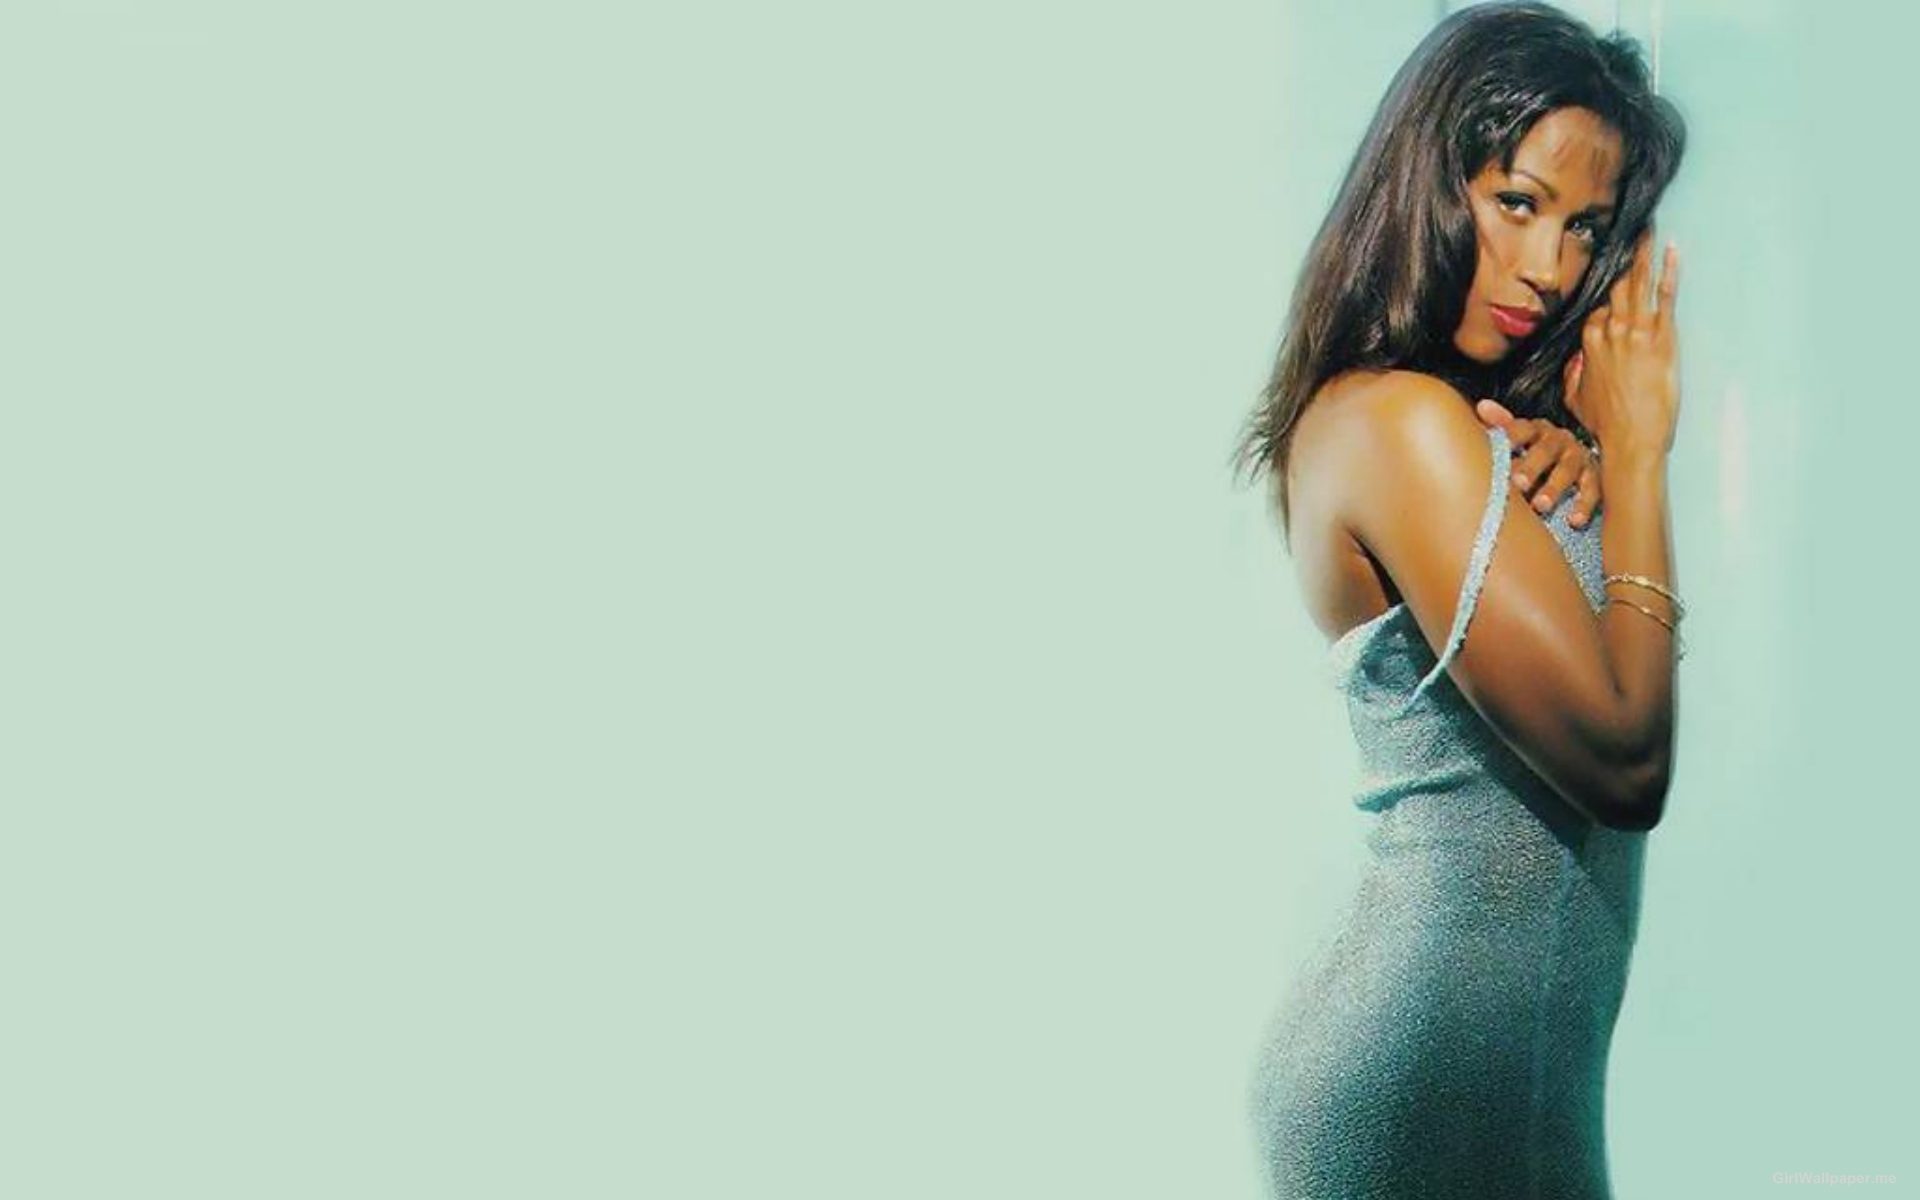 Stacey Dash Wallpapers High Resolution And Quality Download